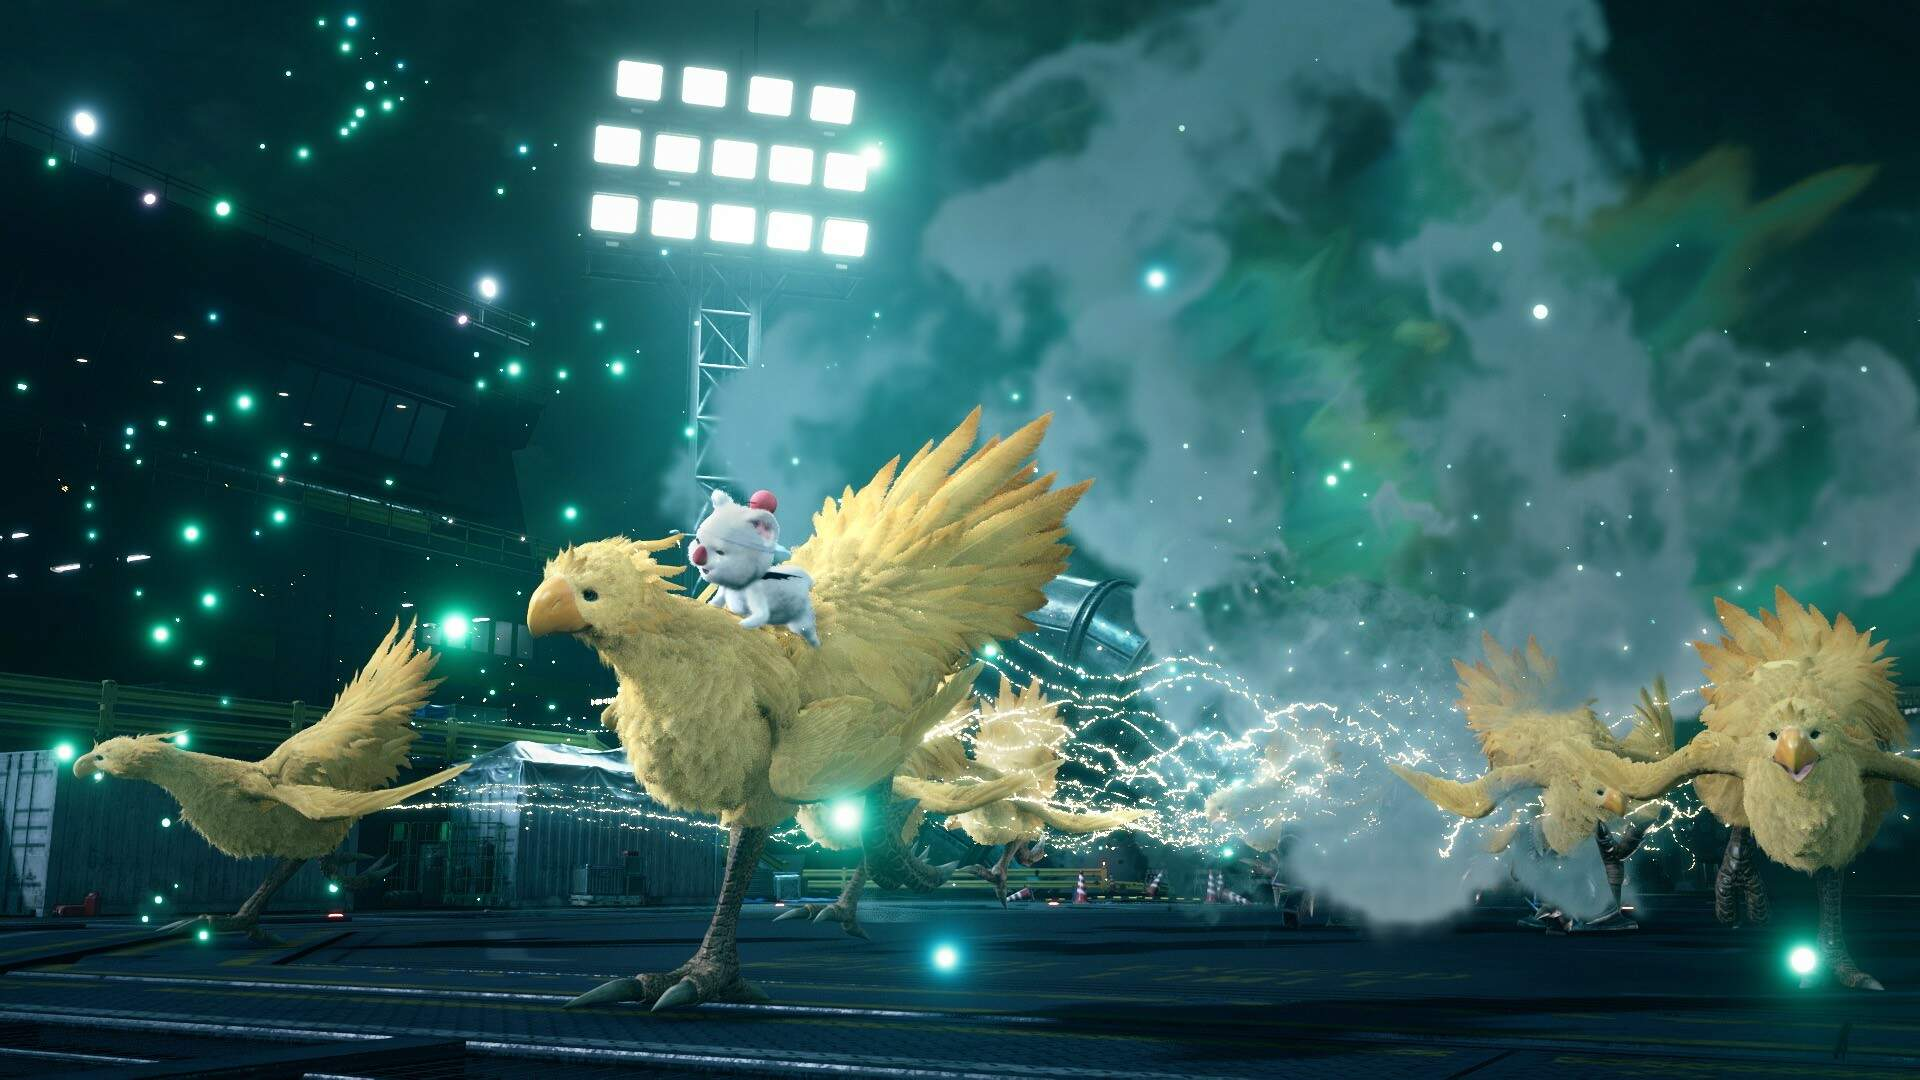 Sorry, Square Enix Won't Release Final Fantasy 7 Remake Early Digitally